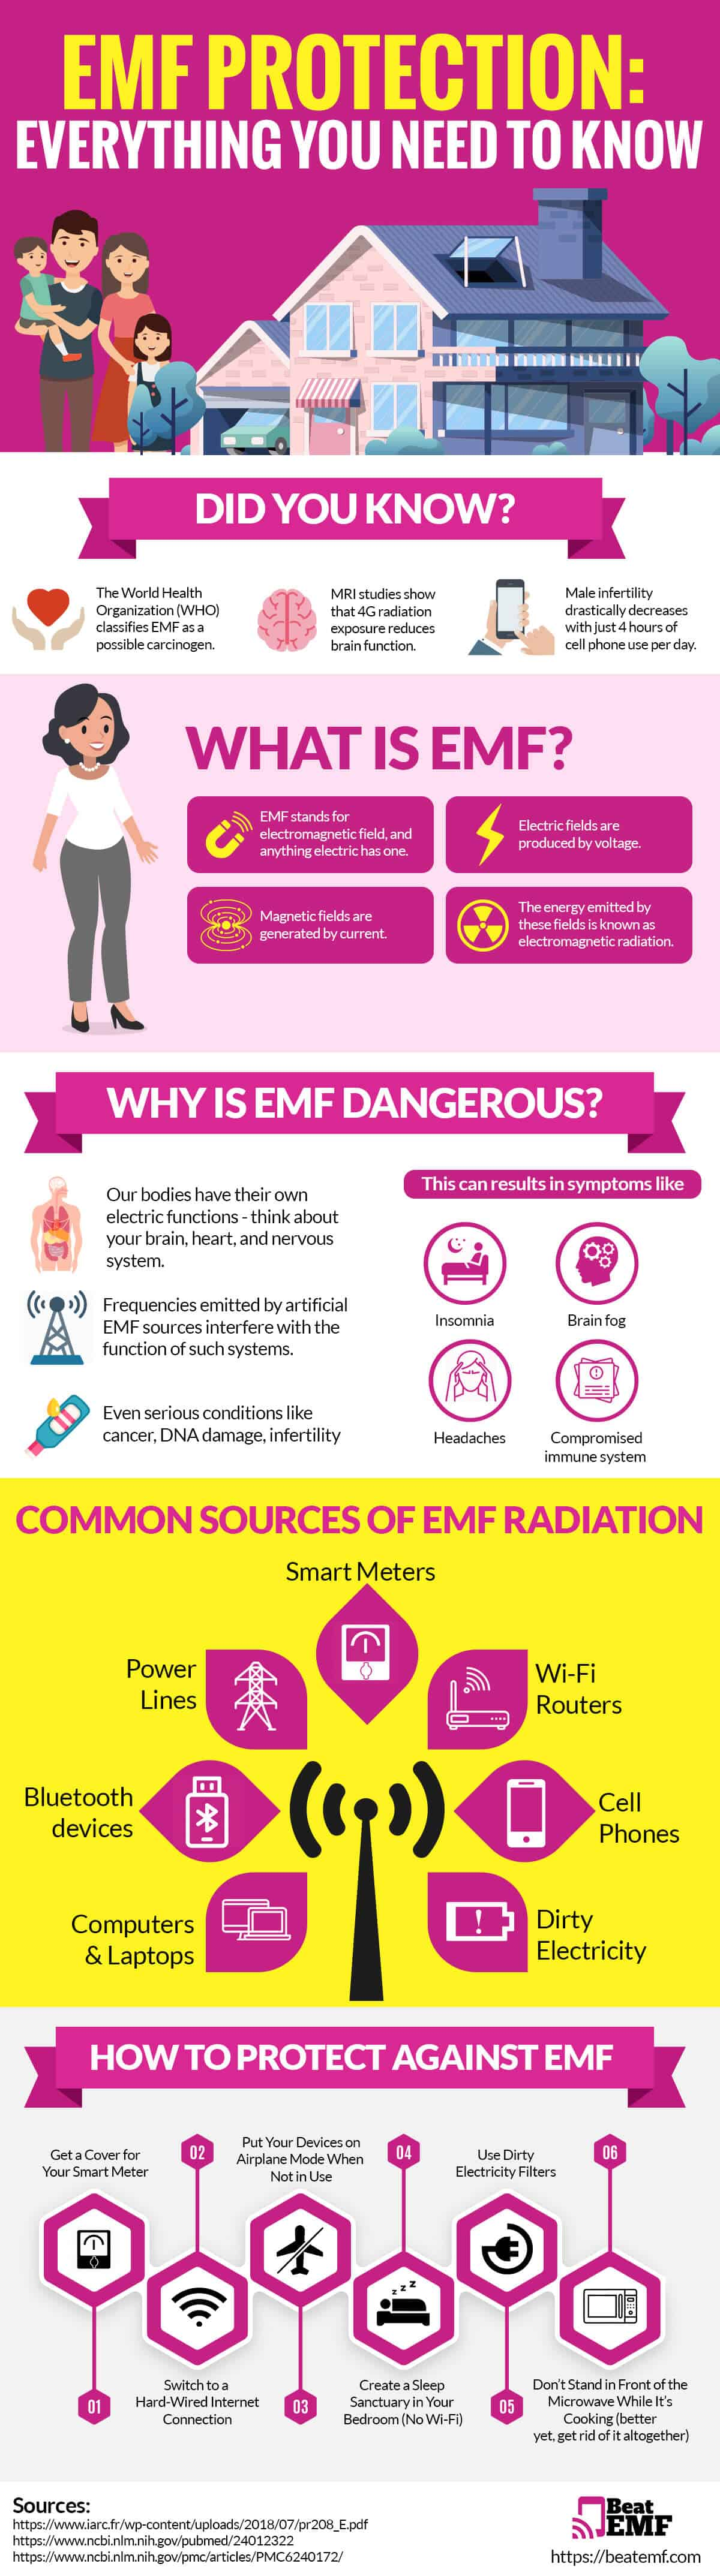 infographic that covers how to protect against EMF